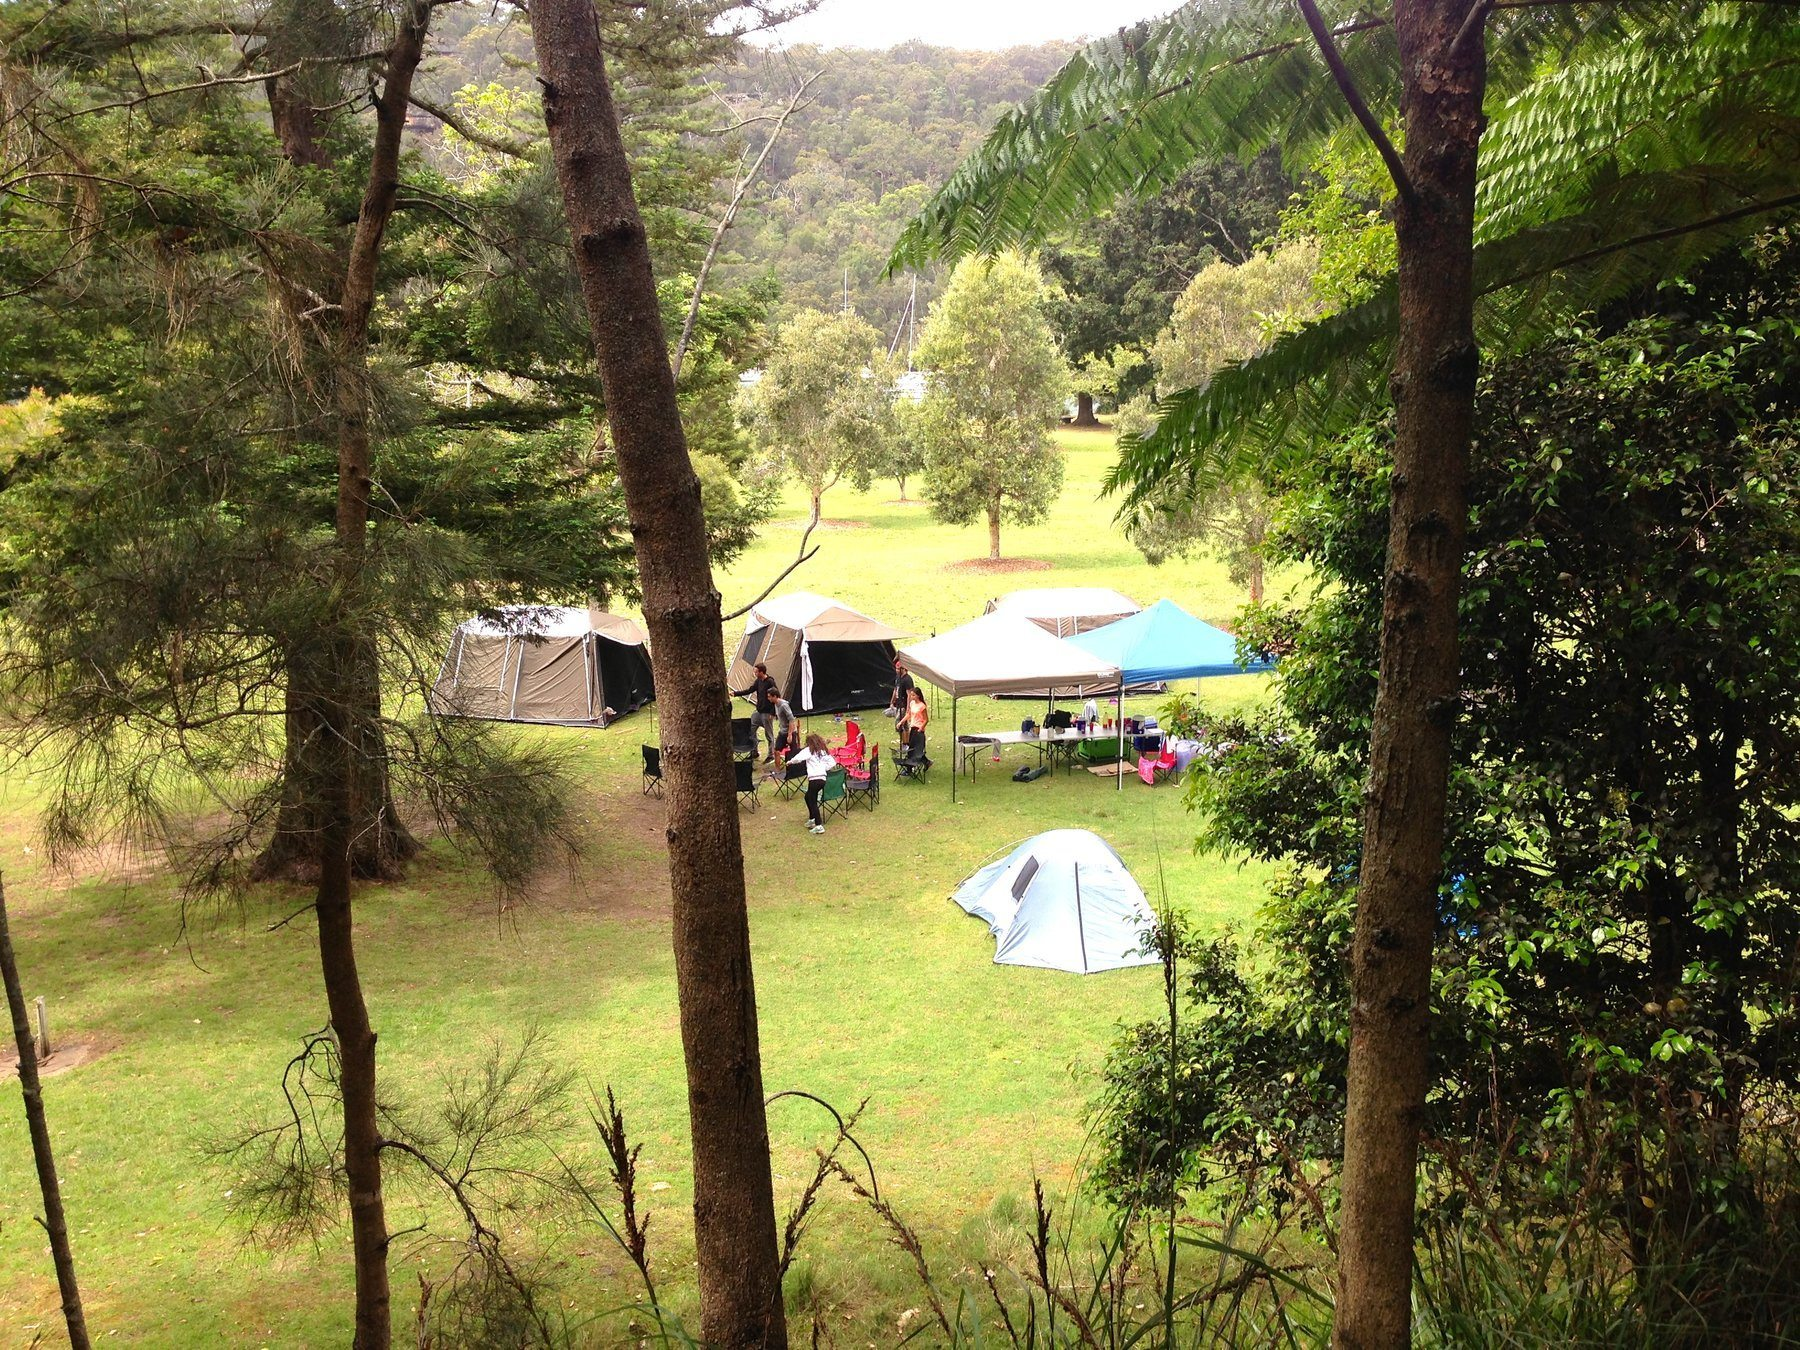 rsz_1ecotreasures_wildlife_camping_tour_22